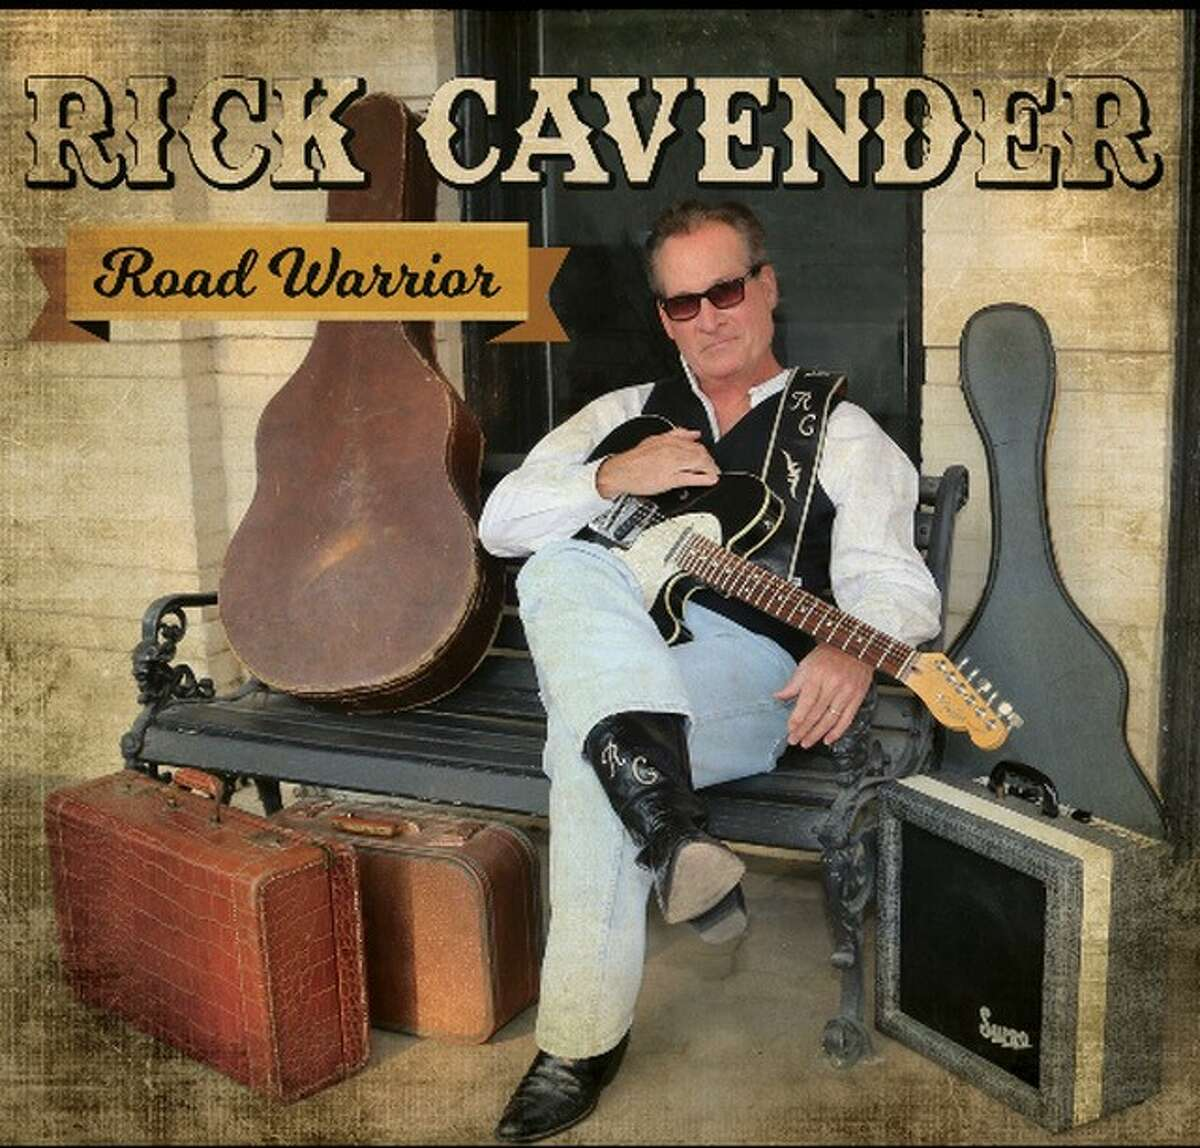 Cavender's music is available on Spotify, Pandora, and Apple Music